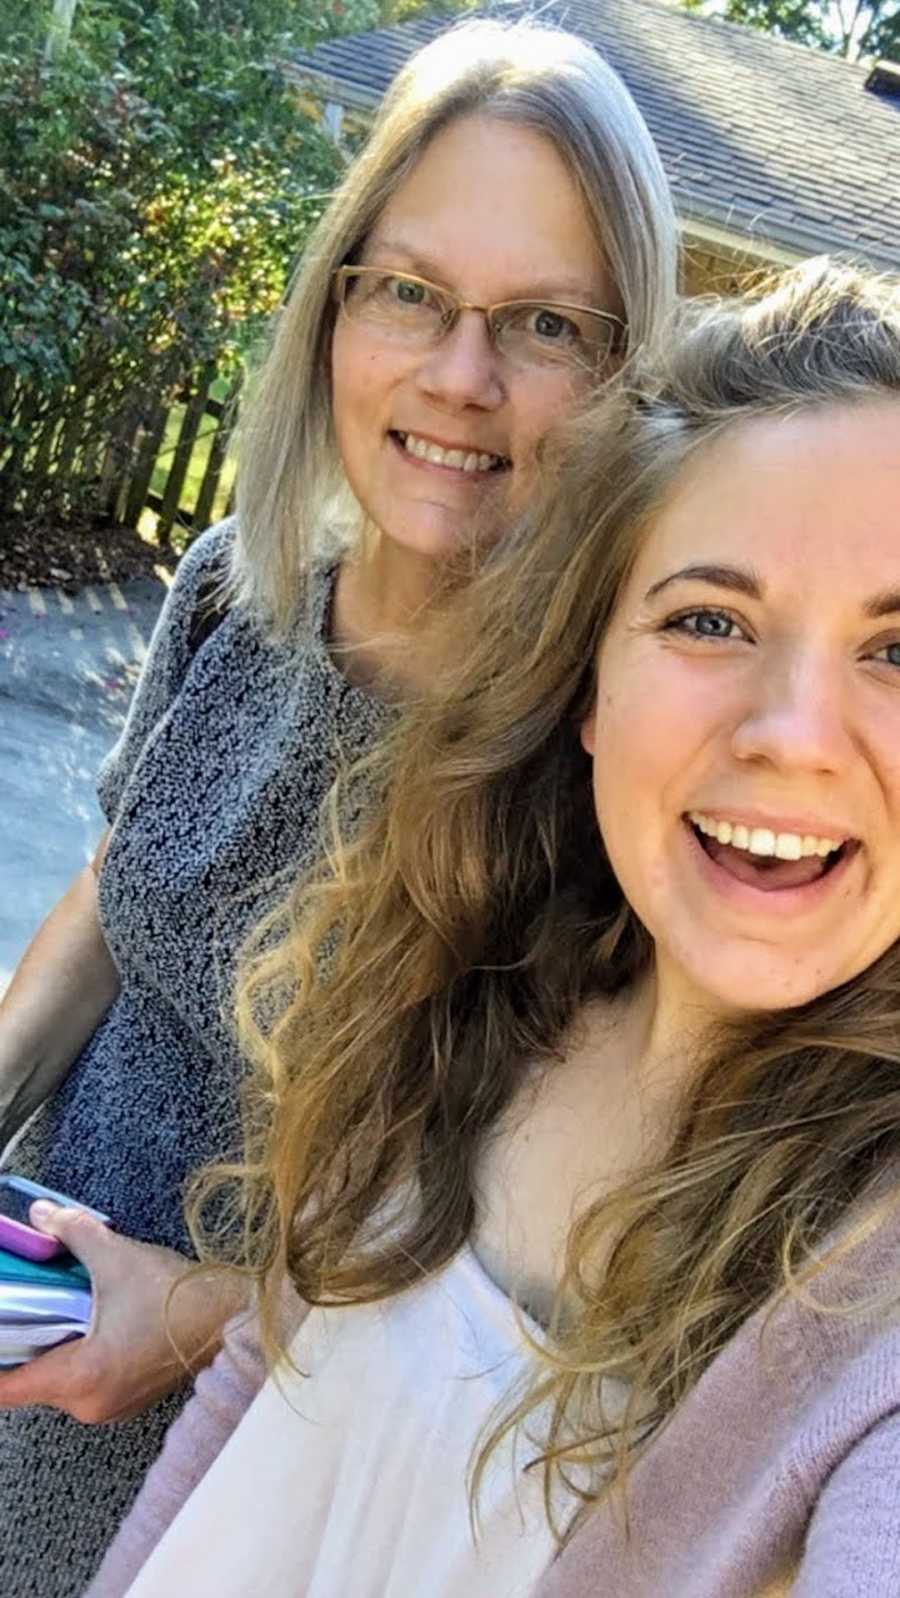 Mother and daughter outside taking smiling selfie